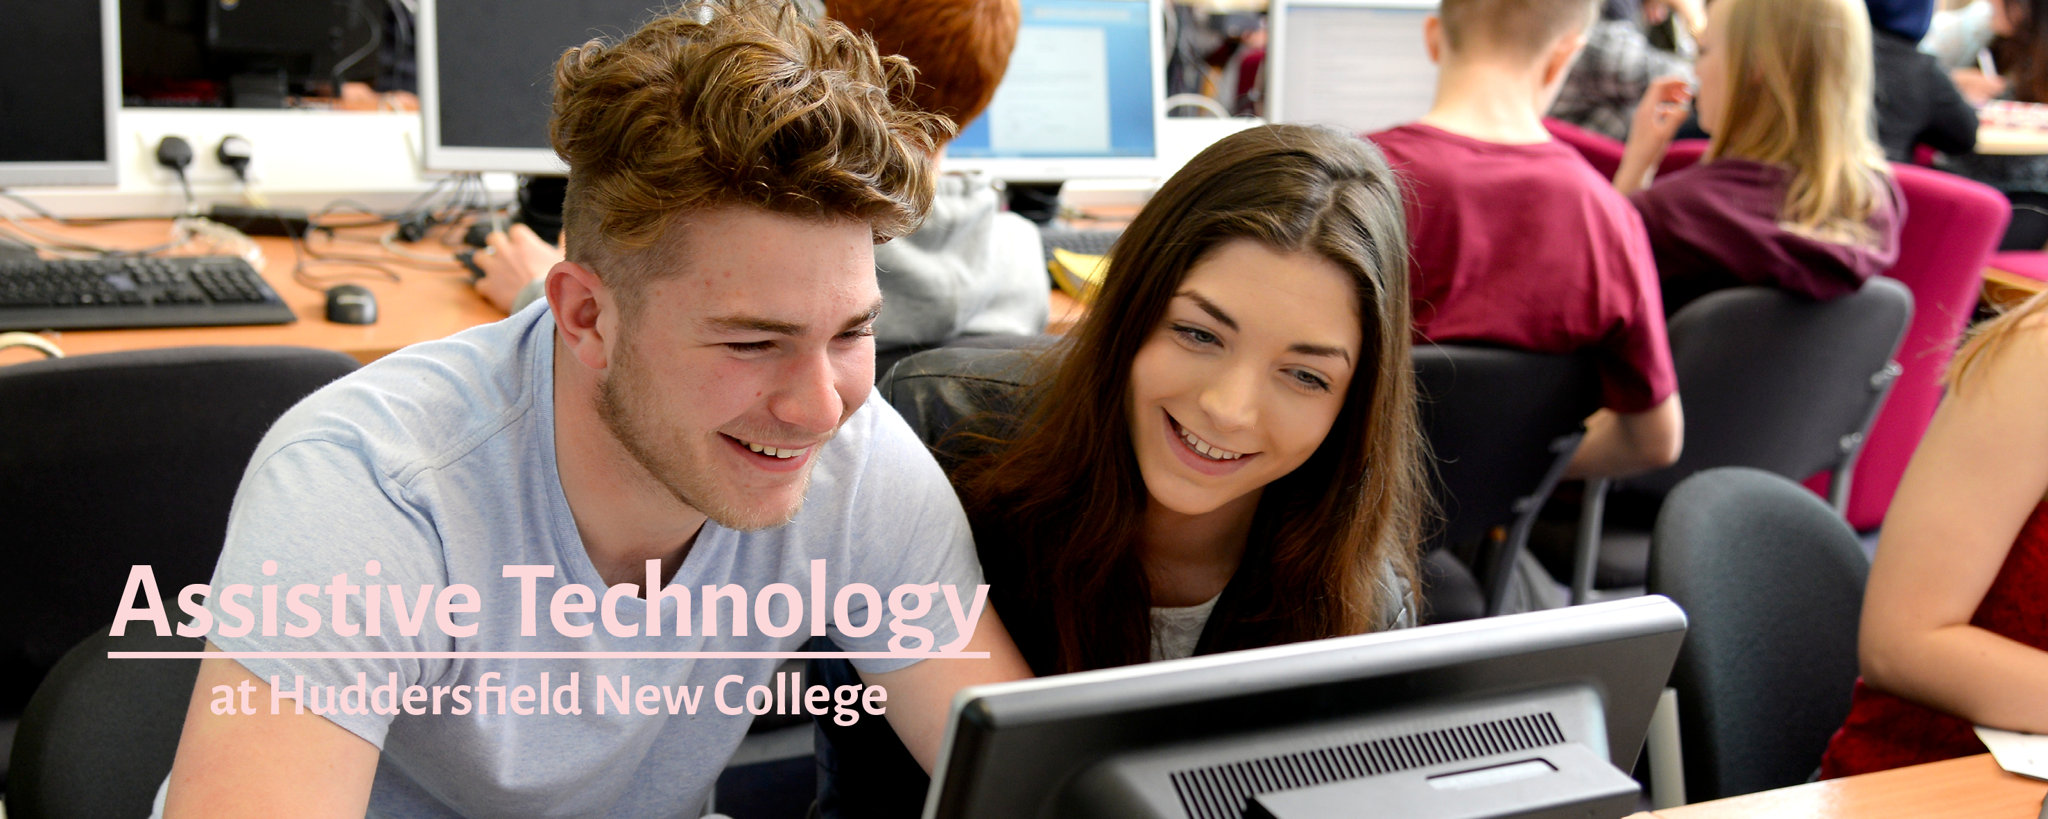 A picture of students using the computing facilities at HNC